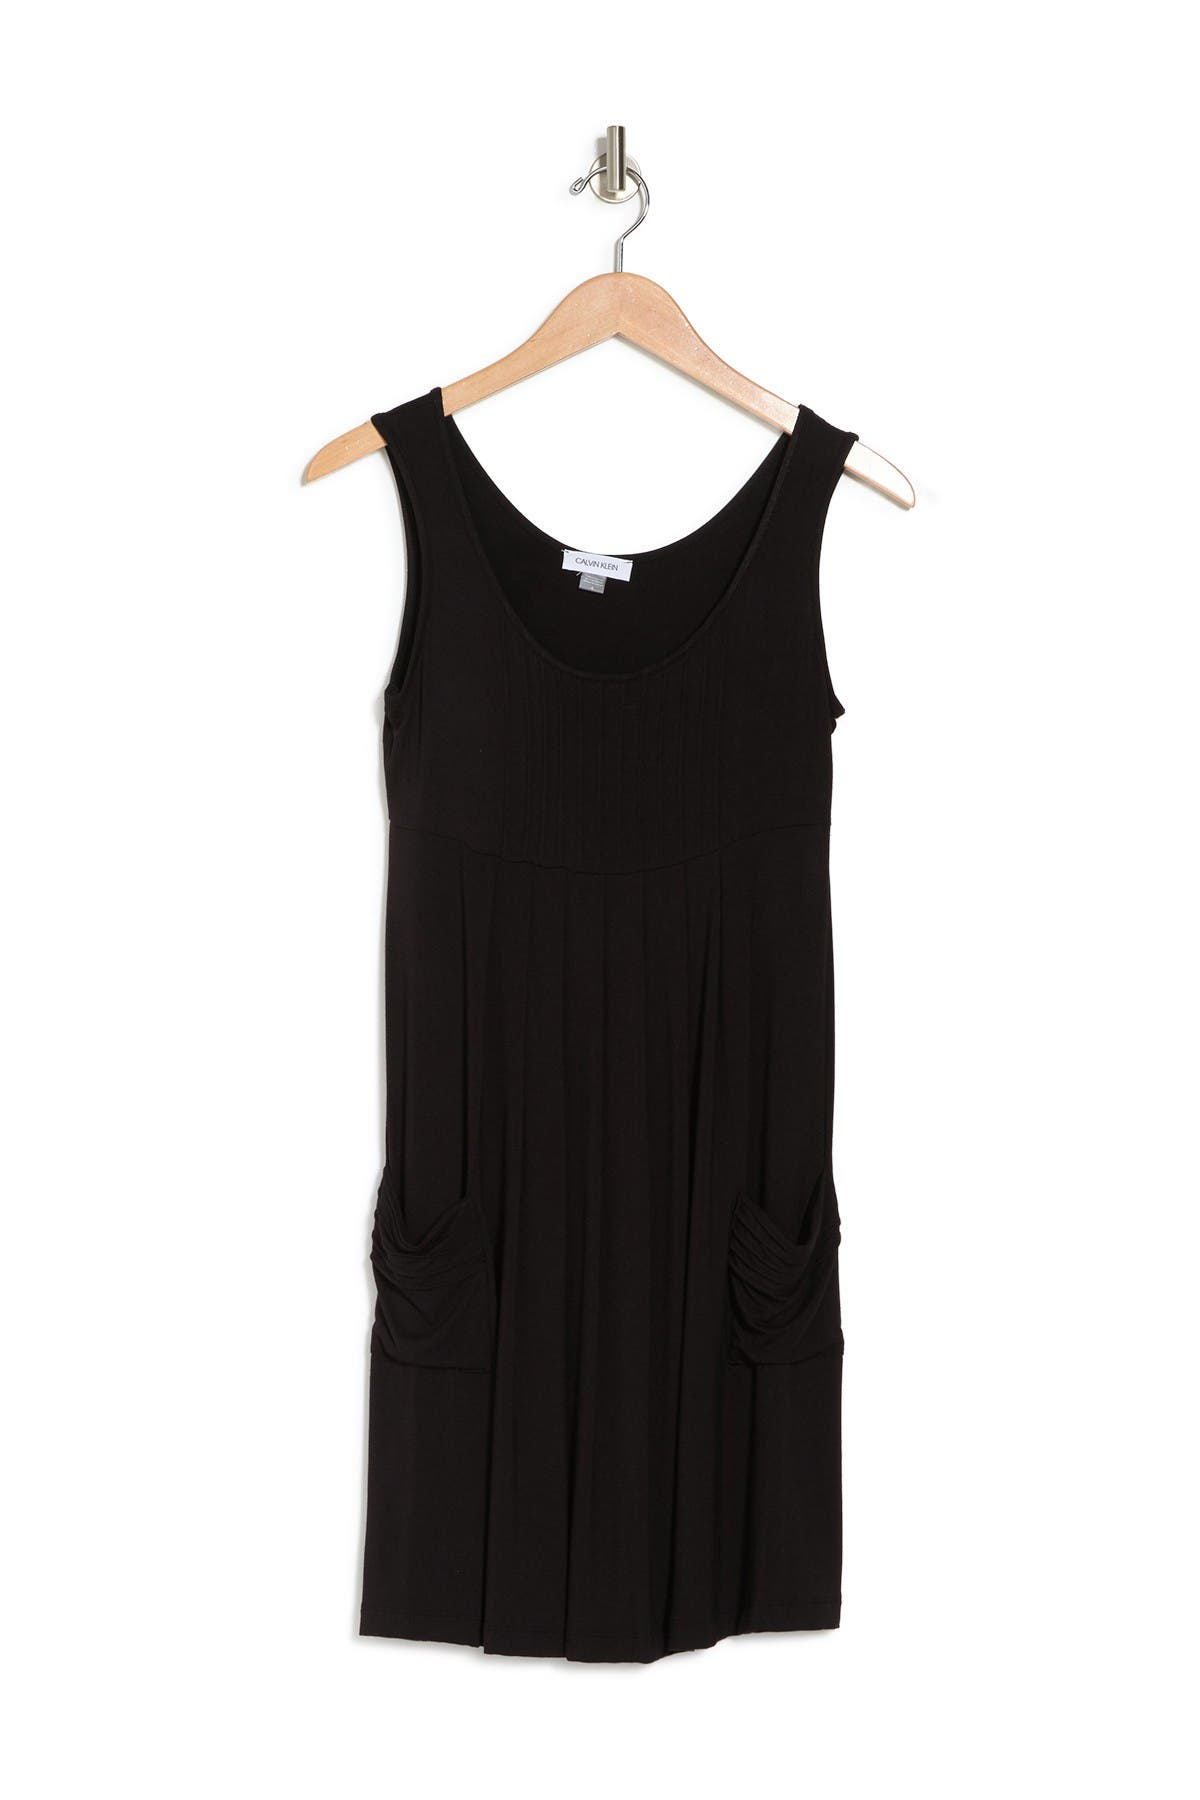 Image of Calvin Klein Pleated Trapeze Tank Dress